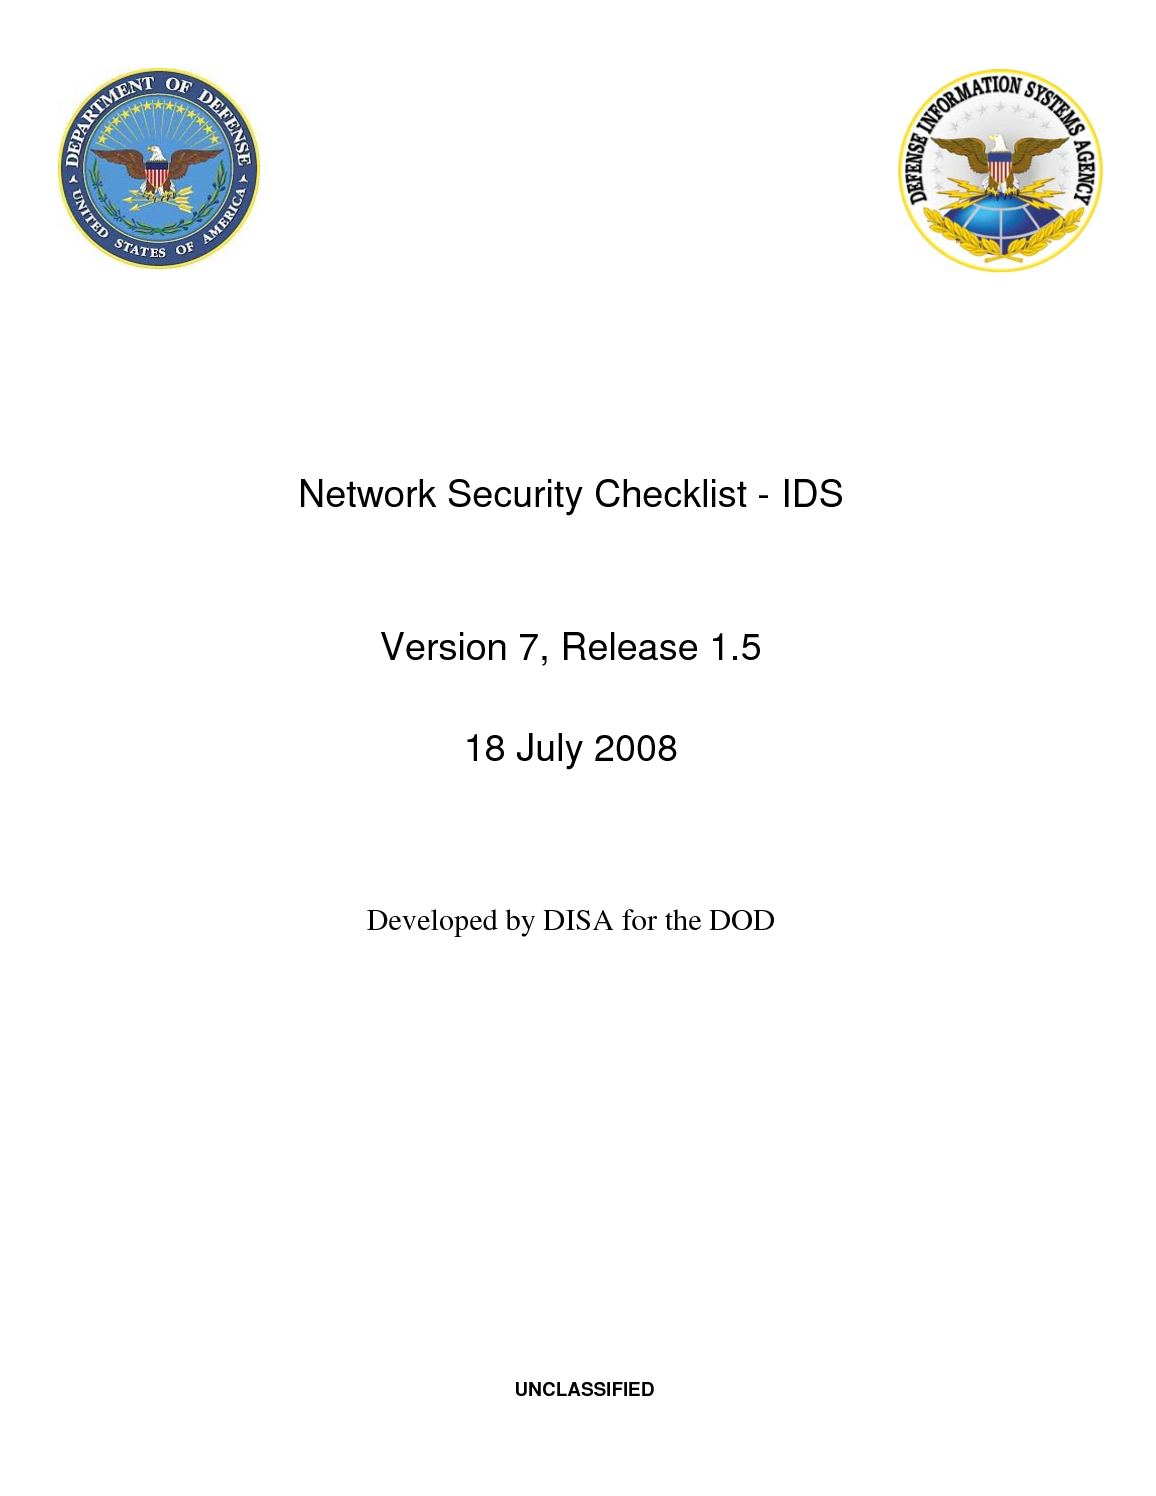 Network Security Checklist - IDS - 18 July 2008